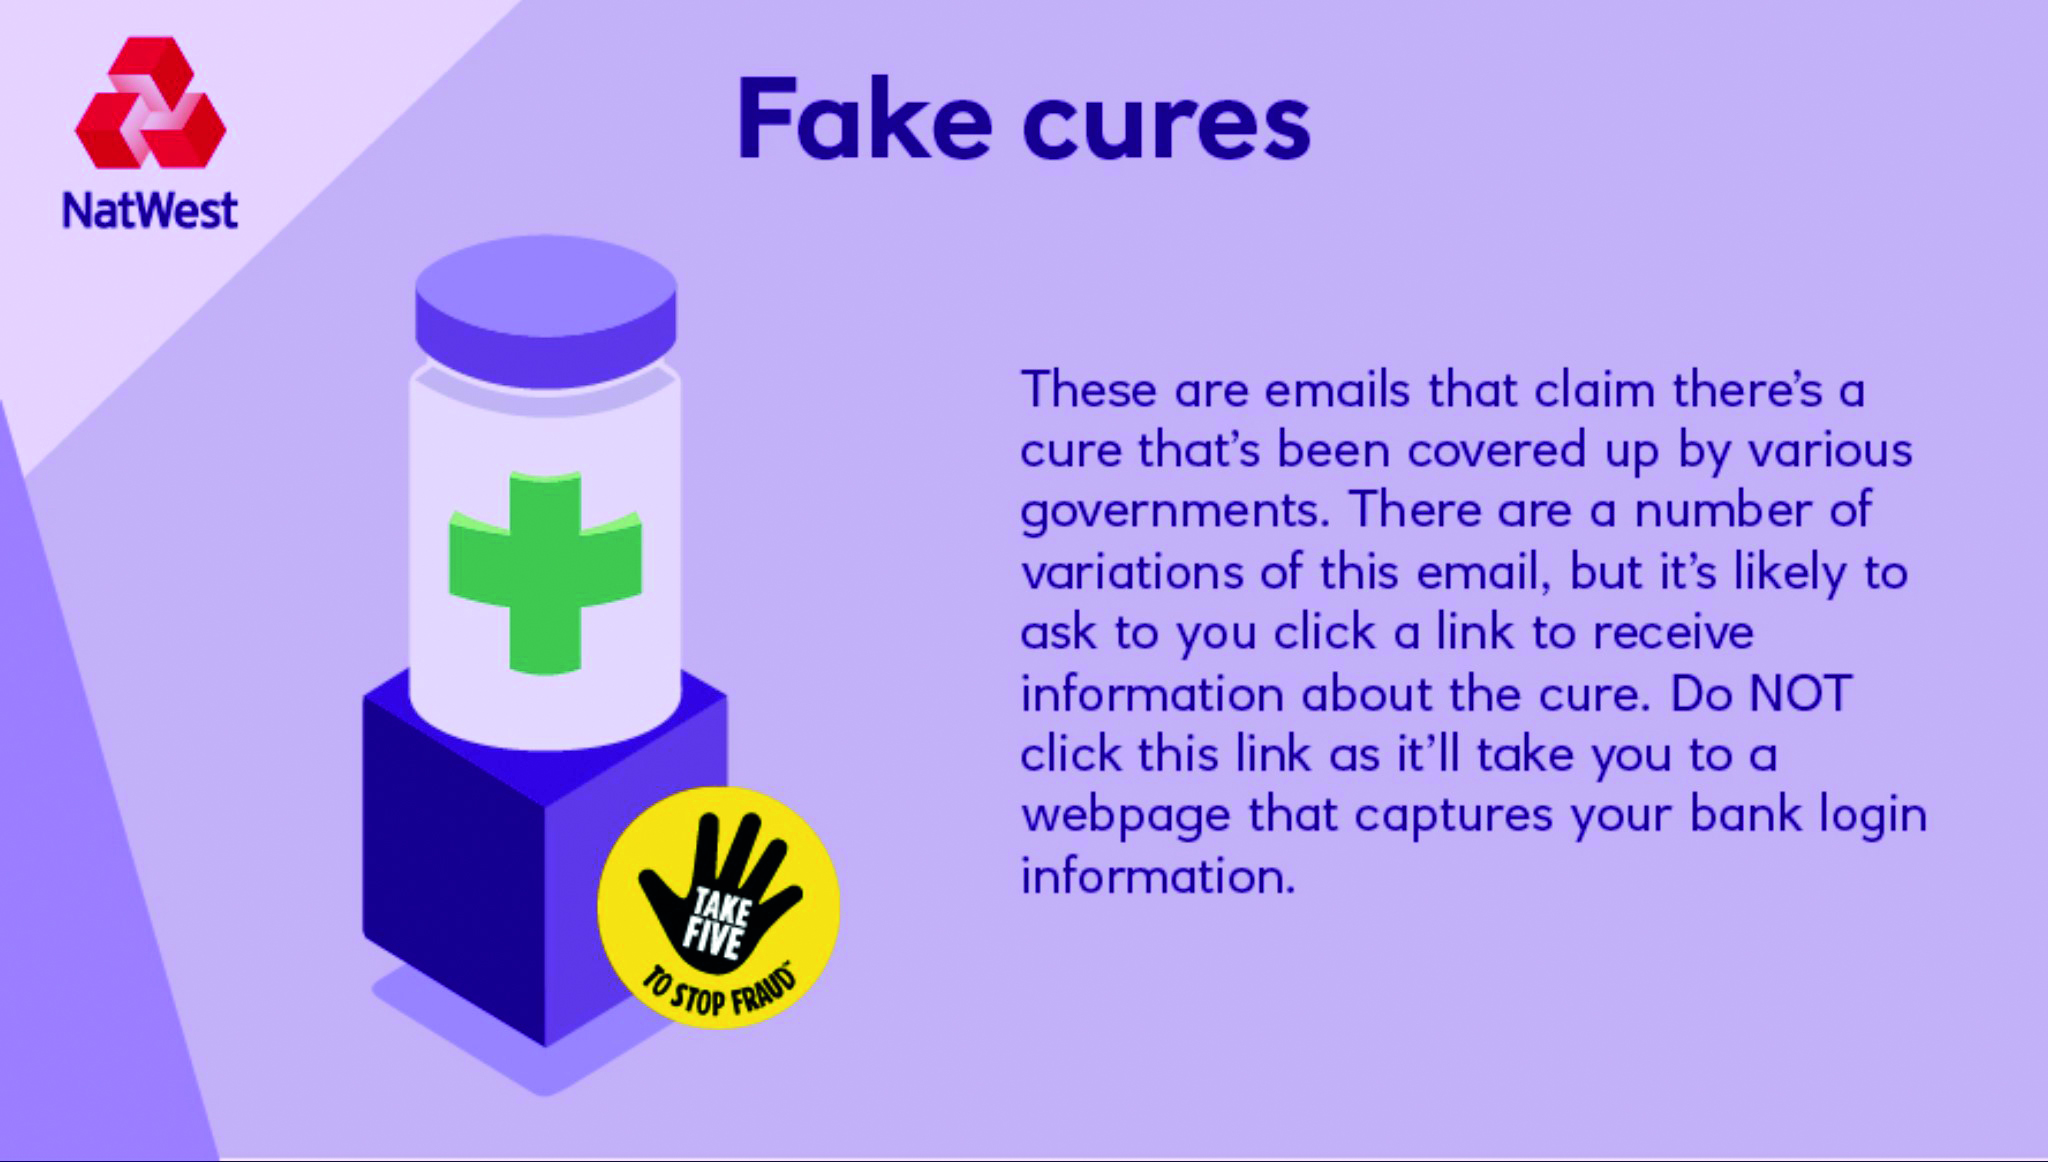 Fake Cures